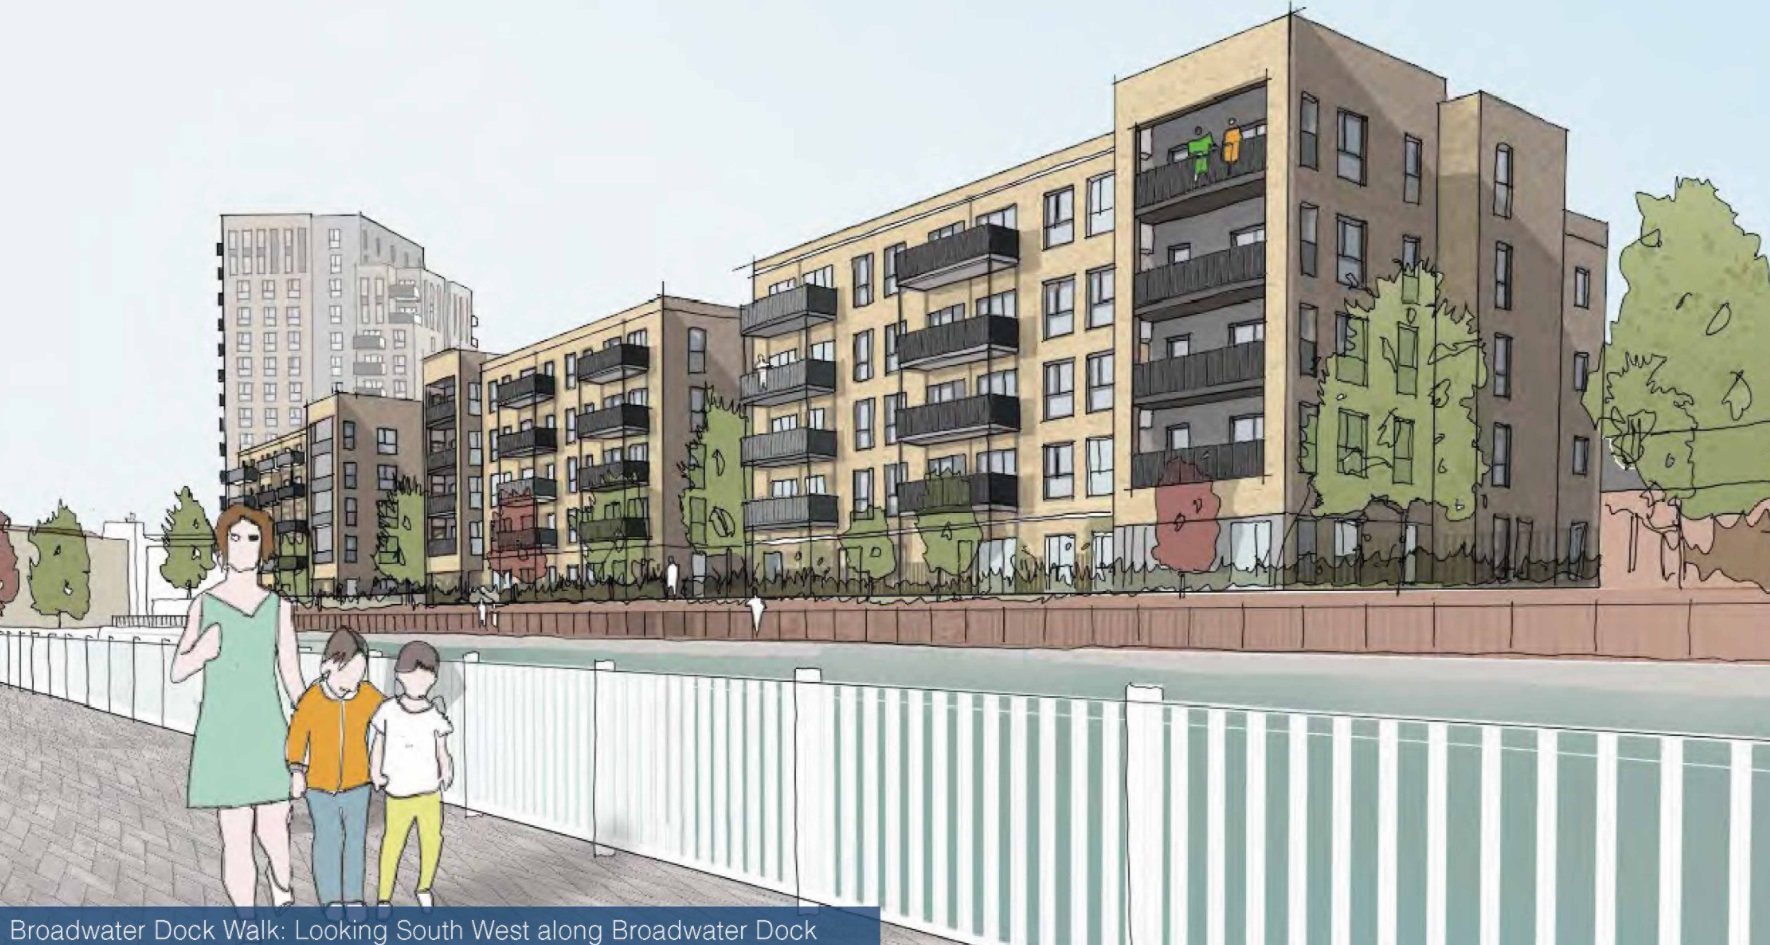 Care home set to be demolished for 341 homes in Thamesmead (or Woolwich as the developer renames it)